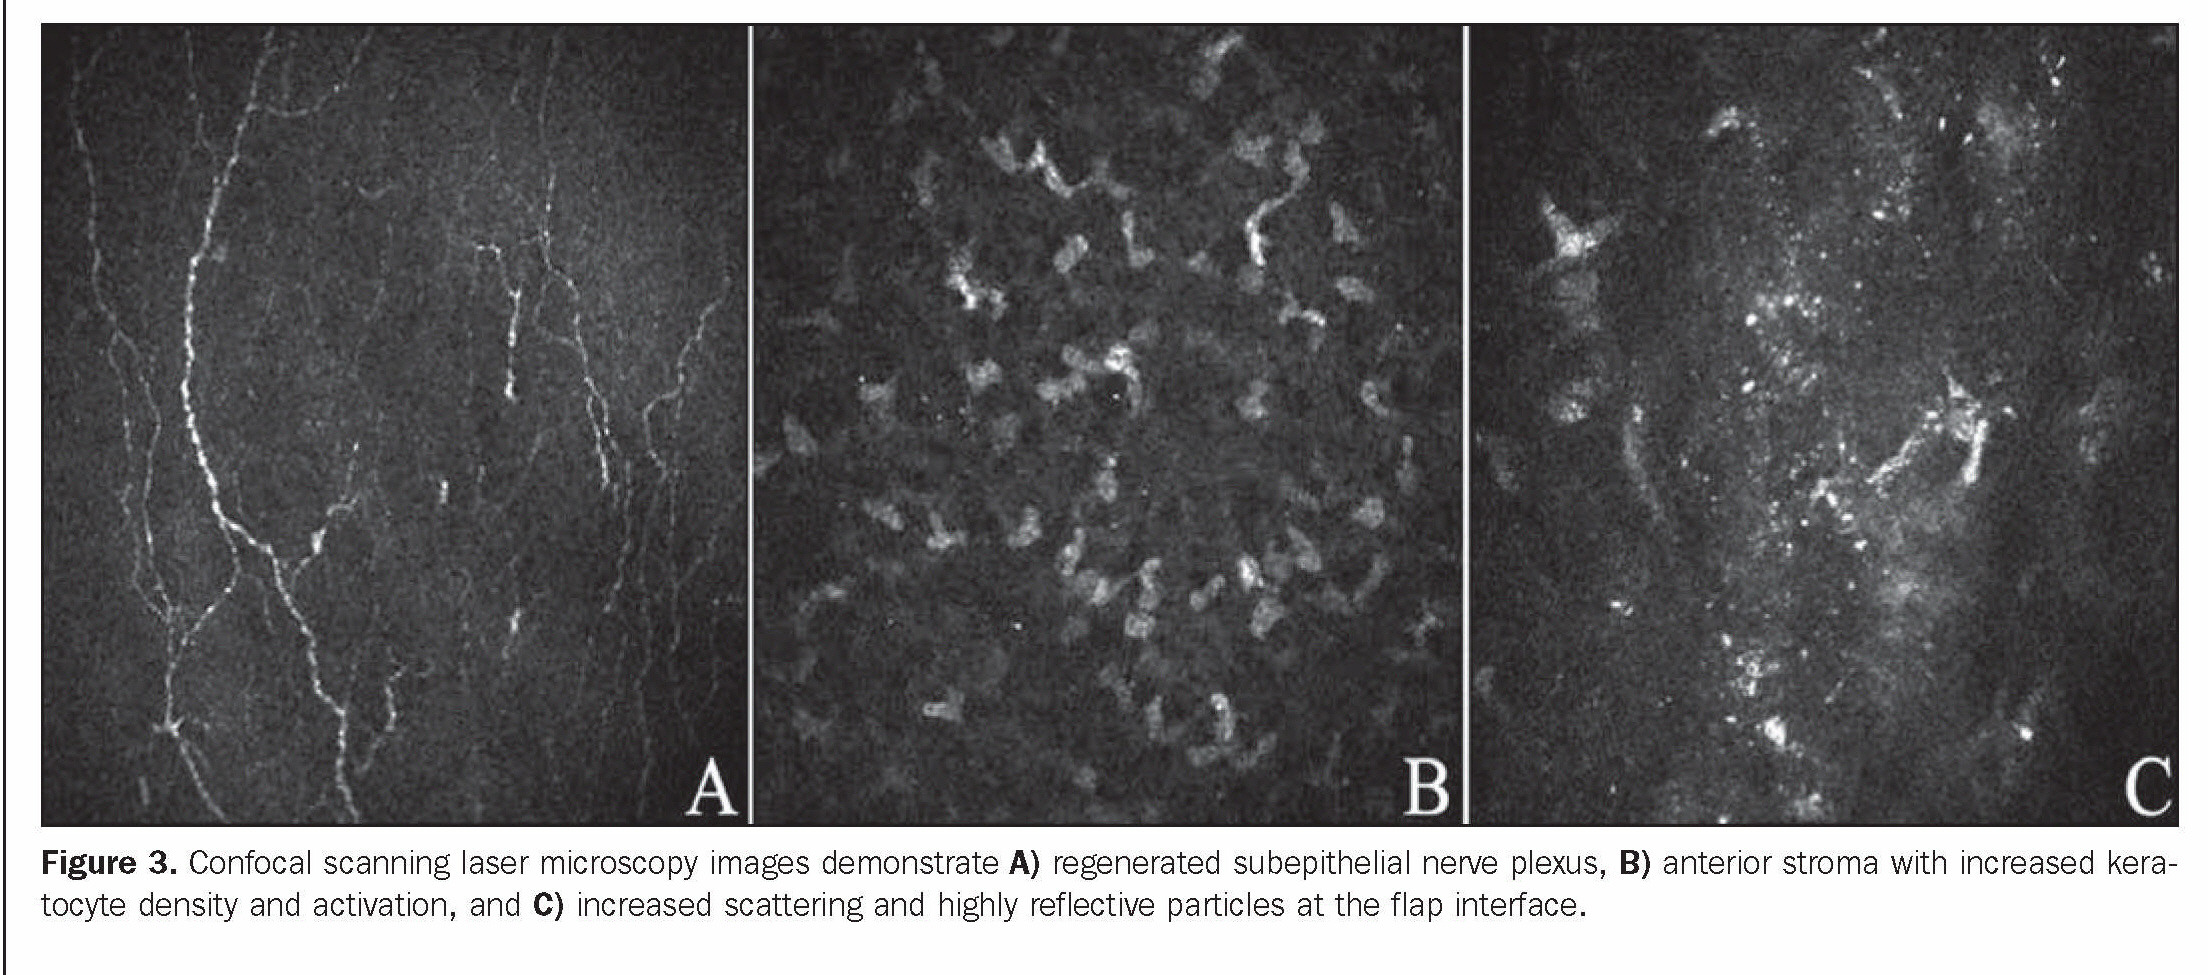 Figure 3. Confocal scanning laser microscopy images demonstrate A) regenerated subepithelial nerve plexus, B) anterior stroma with increased keratocyte density and activation, and C) increased scattering and highly reflective particles at the flap interface.